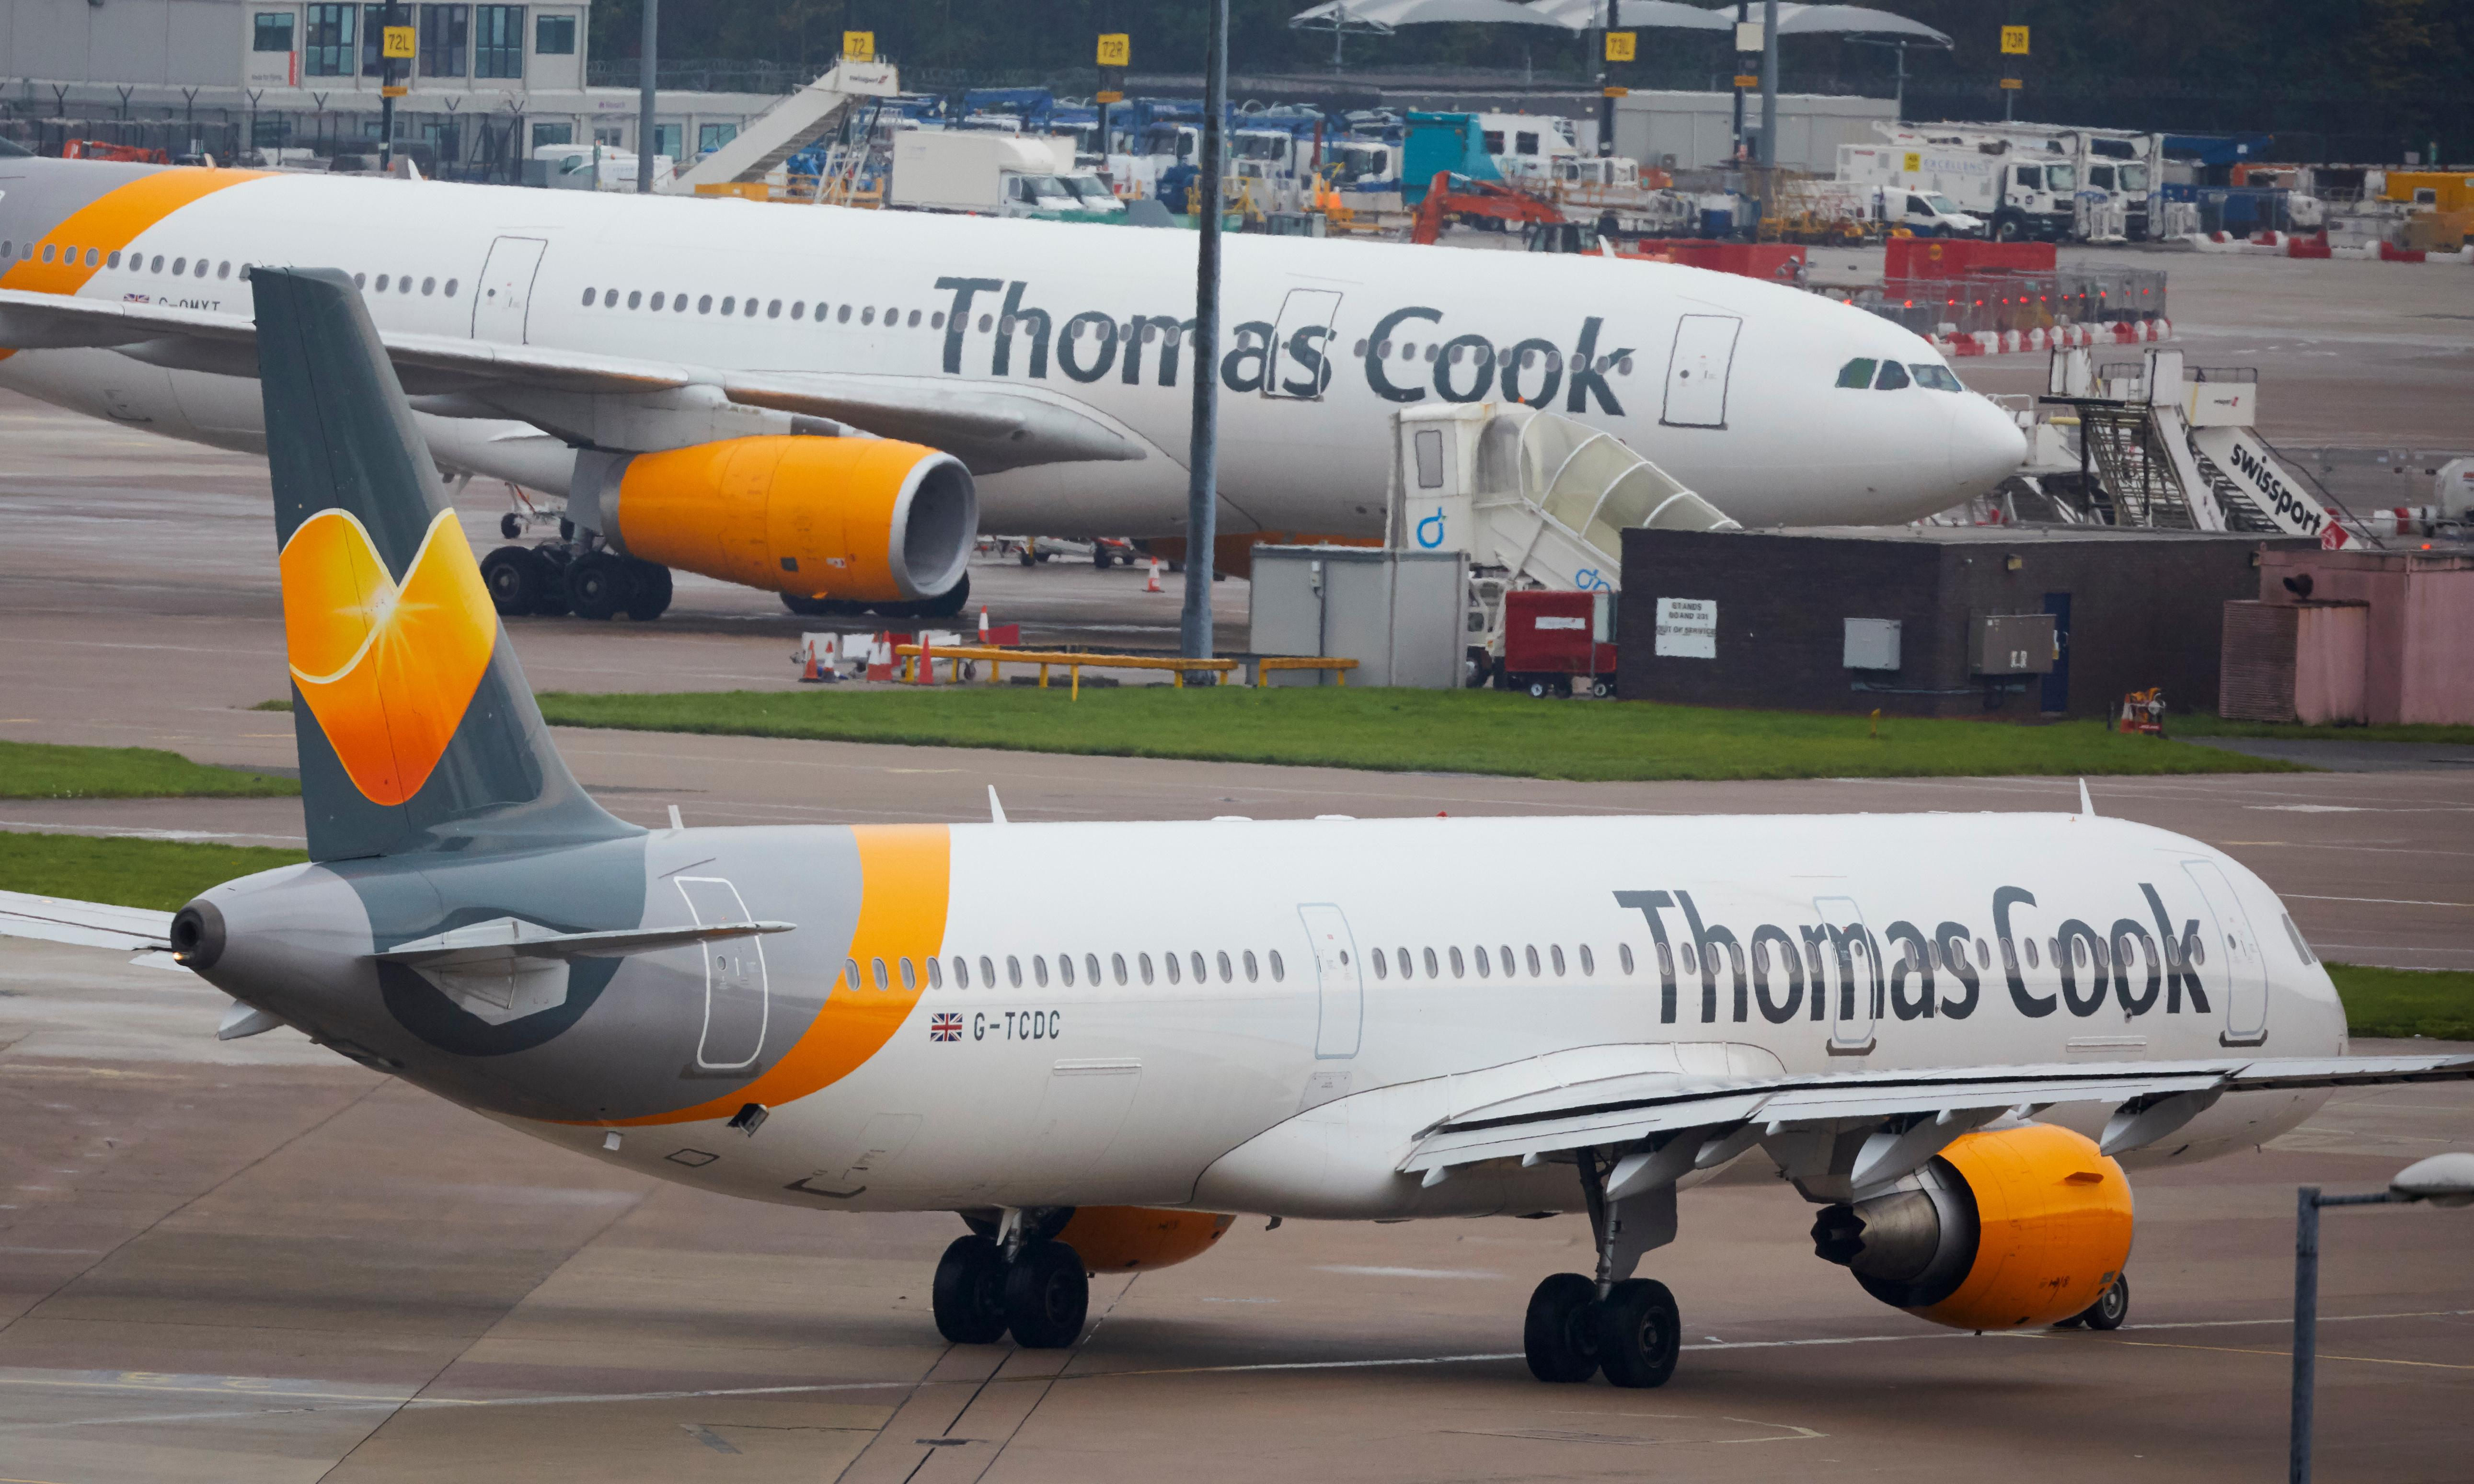 Monday briefing: Thomas Cook goes bust, stranding thousands